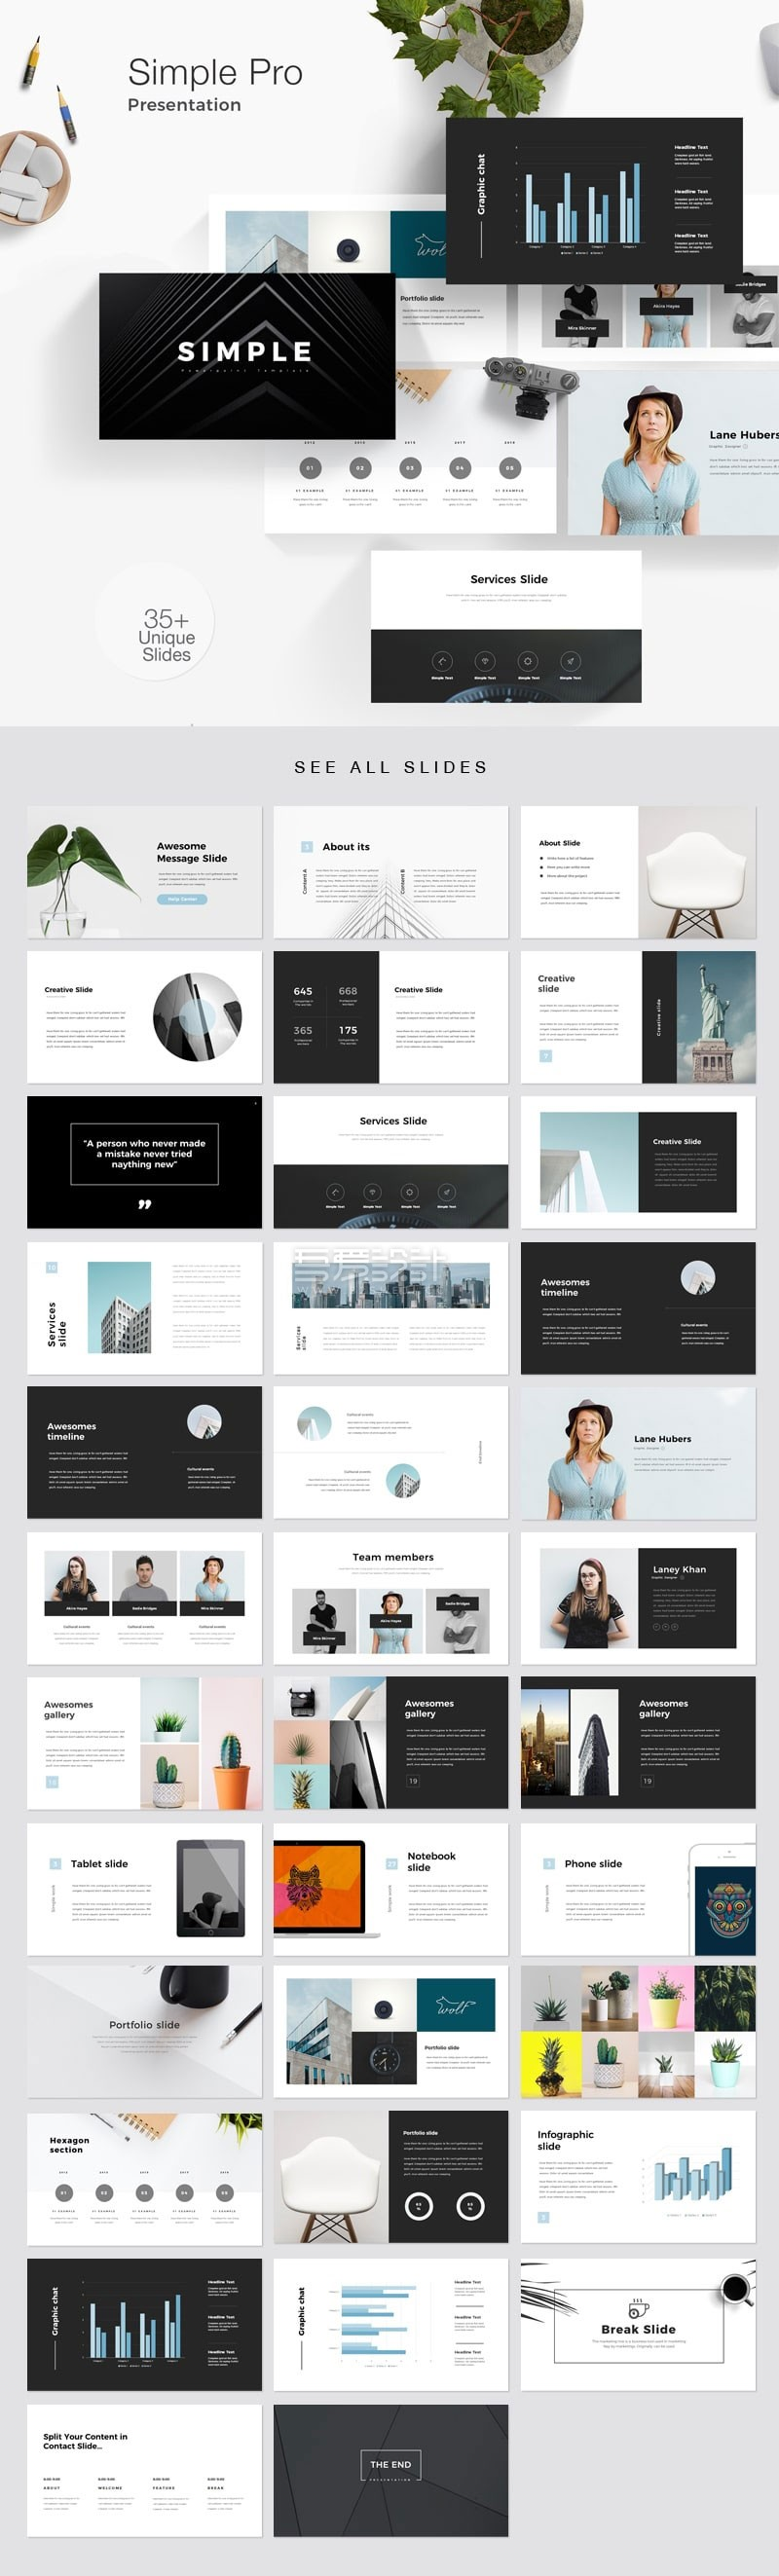 1-simple-powerpoint-presentation-template-1609-preview